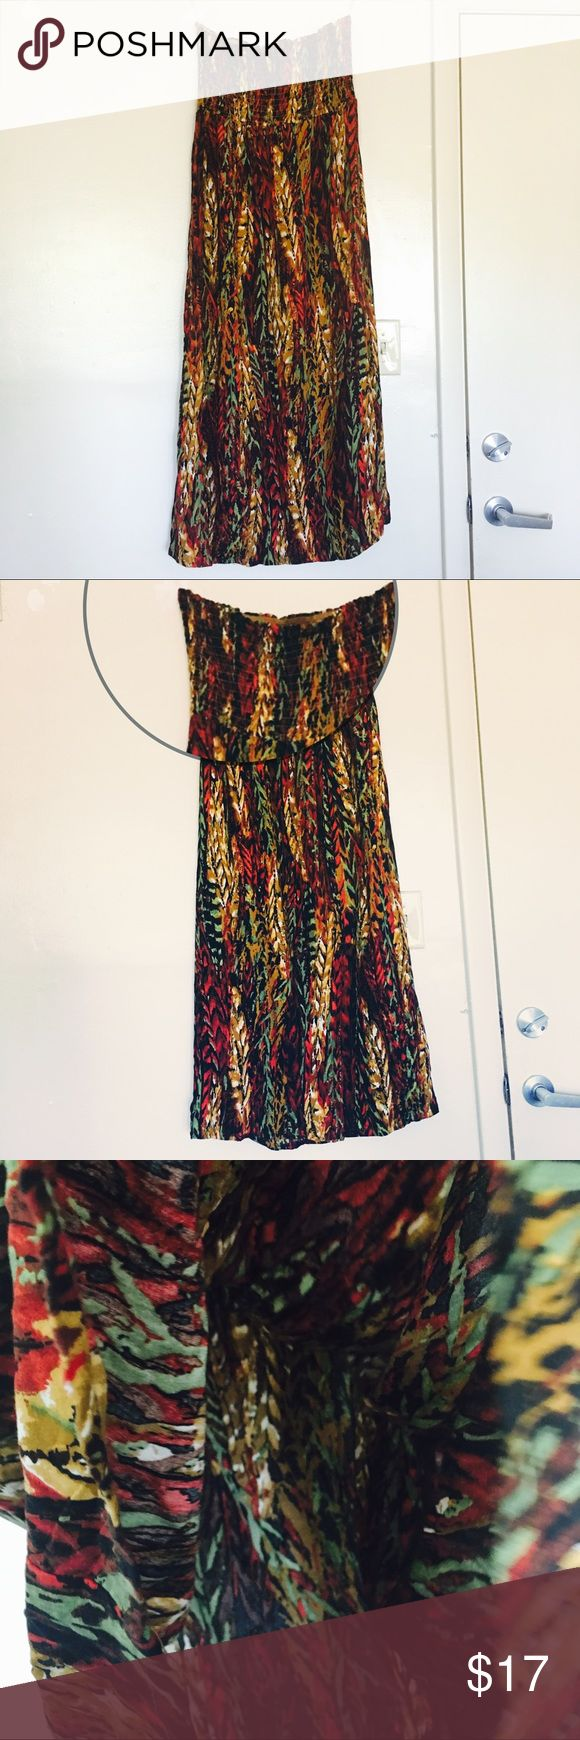 *New Look* Strapless Tropical Print Maxi Dress Great Condition ⭐️ Women's XXL (Size 18-20) Thin but strong material, stretchy bust top which is great for slipping in and out.  (Aproxima.) Measurements based on size chart.... 18-20  Bust: ~47.5-50 in Waist: ~42-44in Lower Hip: ~50-53  #womens #womensdresses #plusmaxidress #maxidress #tropical #summerstyle #spring #womensfashion #fashion #tribal #womensxxl #womensplus #plusdress #sizexxlwomens #hot #longdresses #newlookdress #informal…